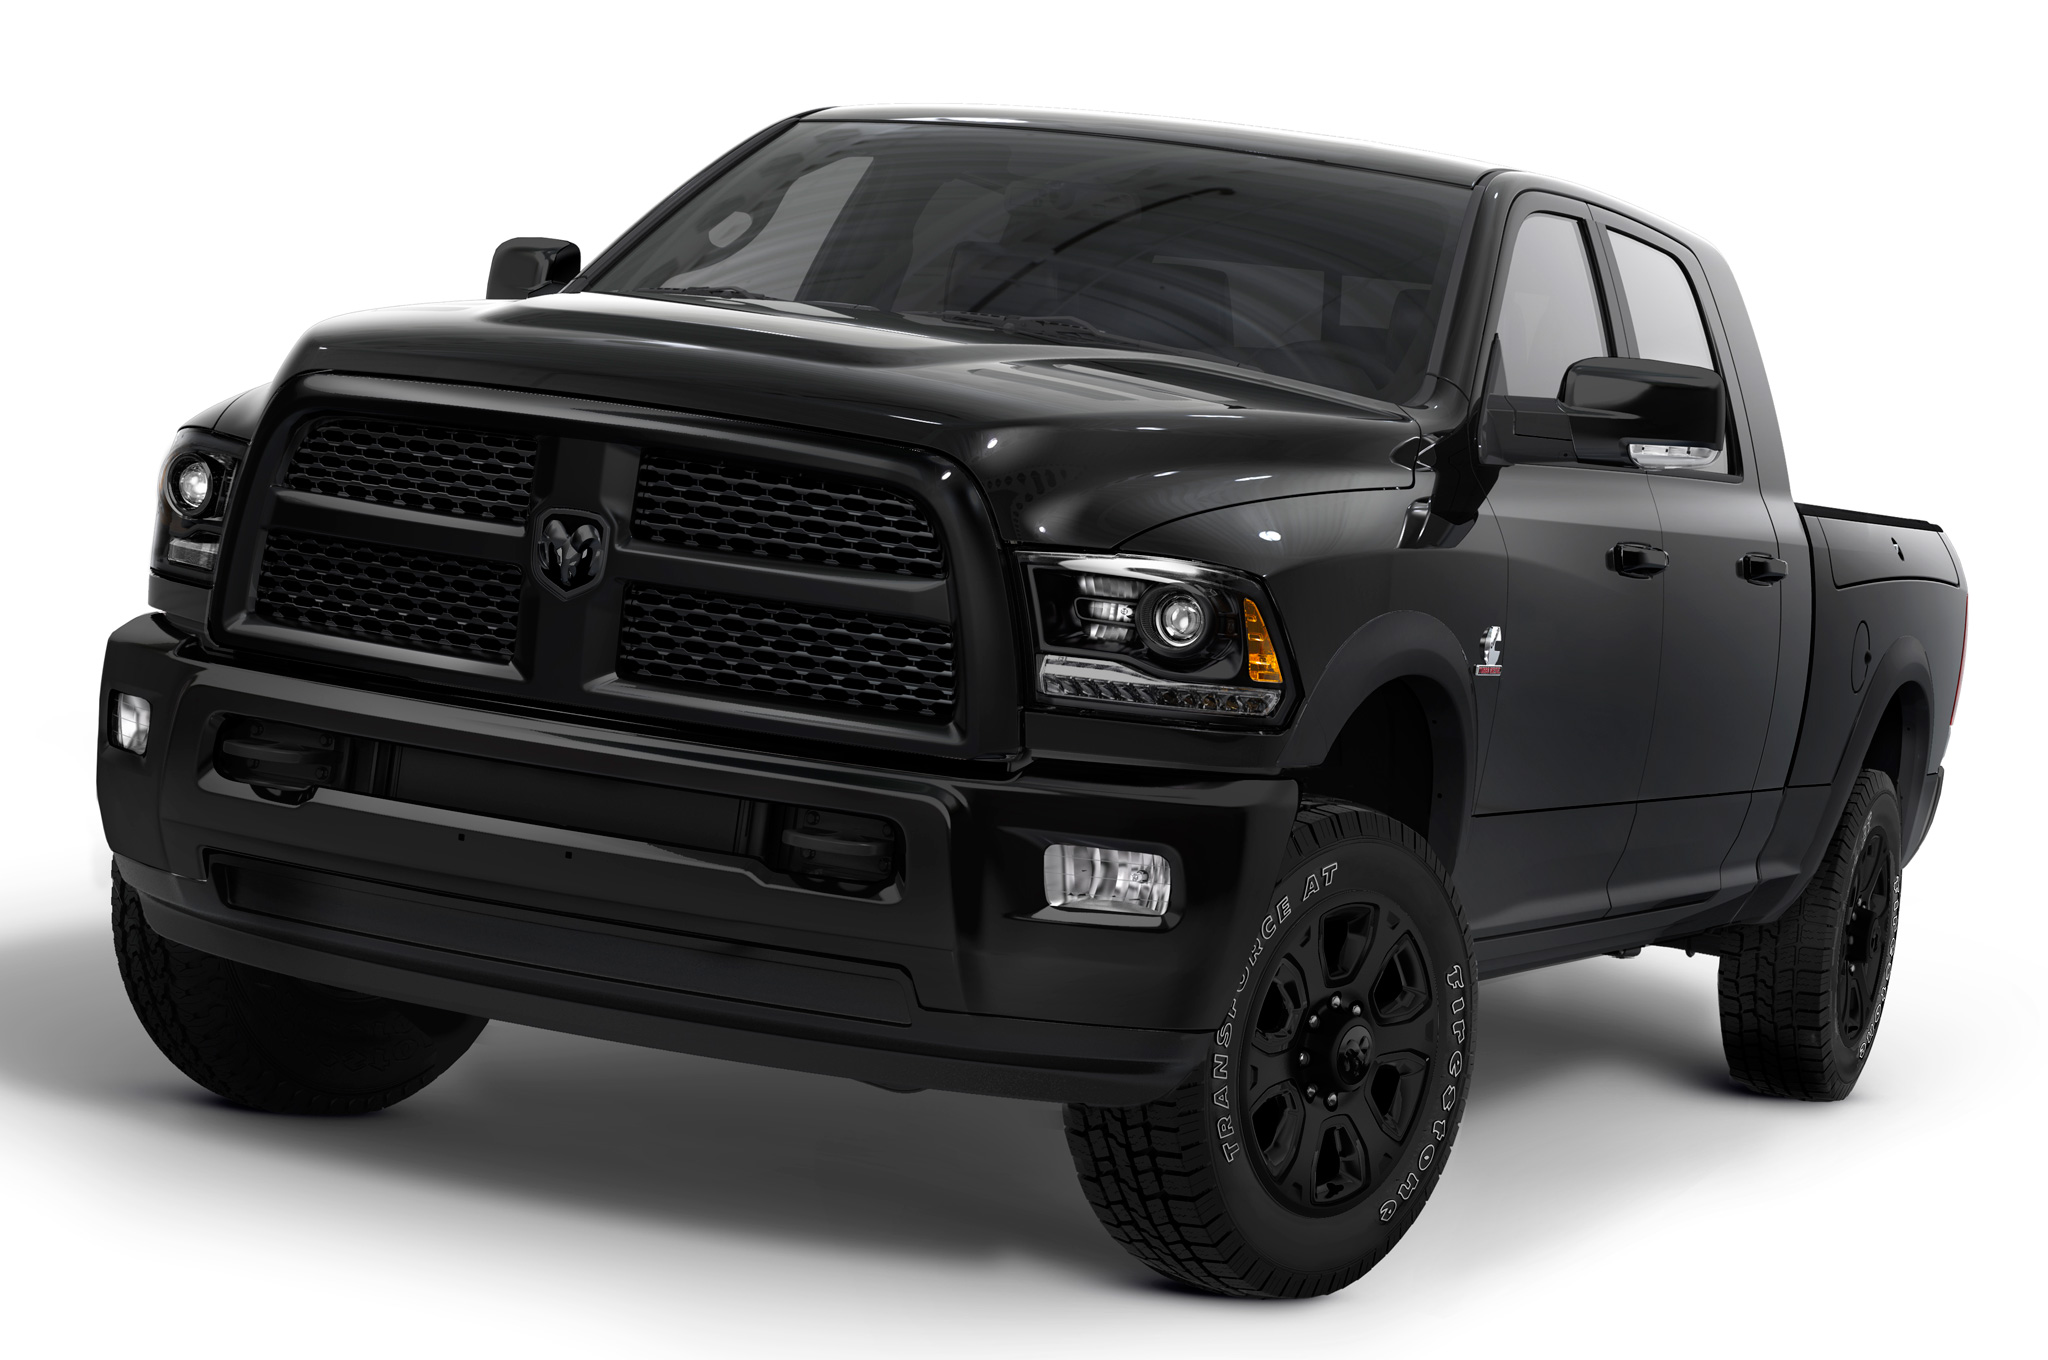 black express package now available for 2014 ram heavy duty motor